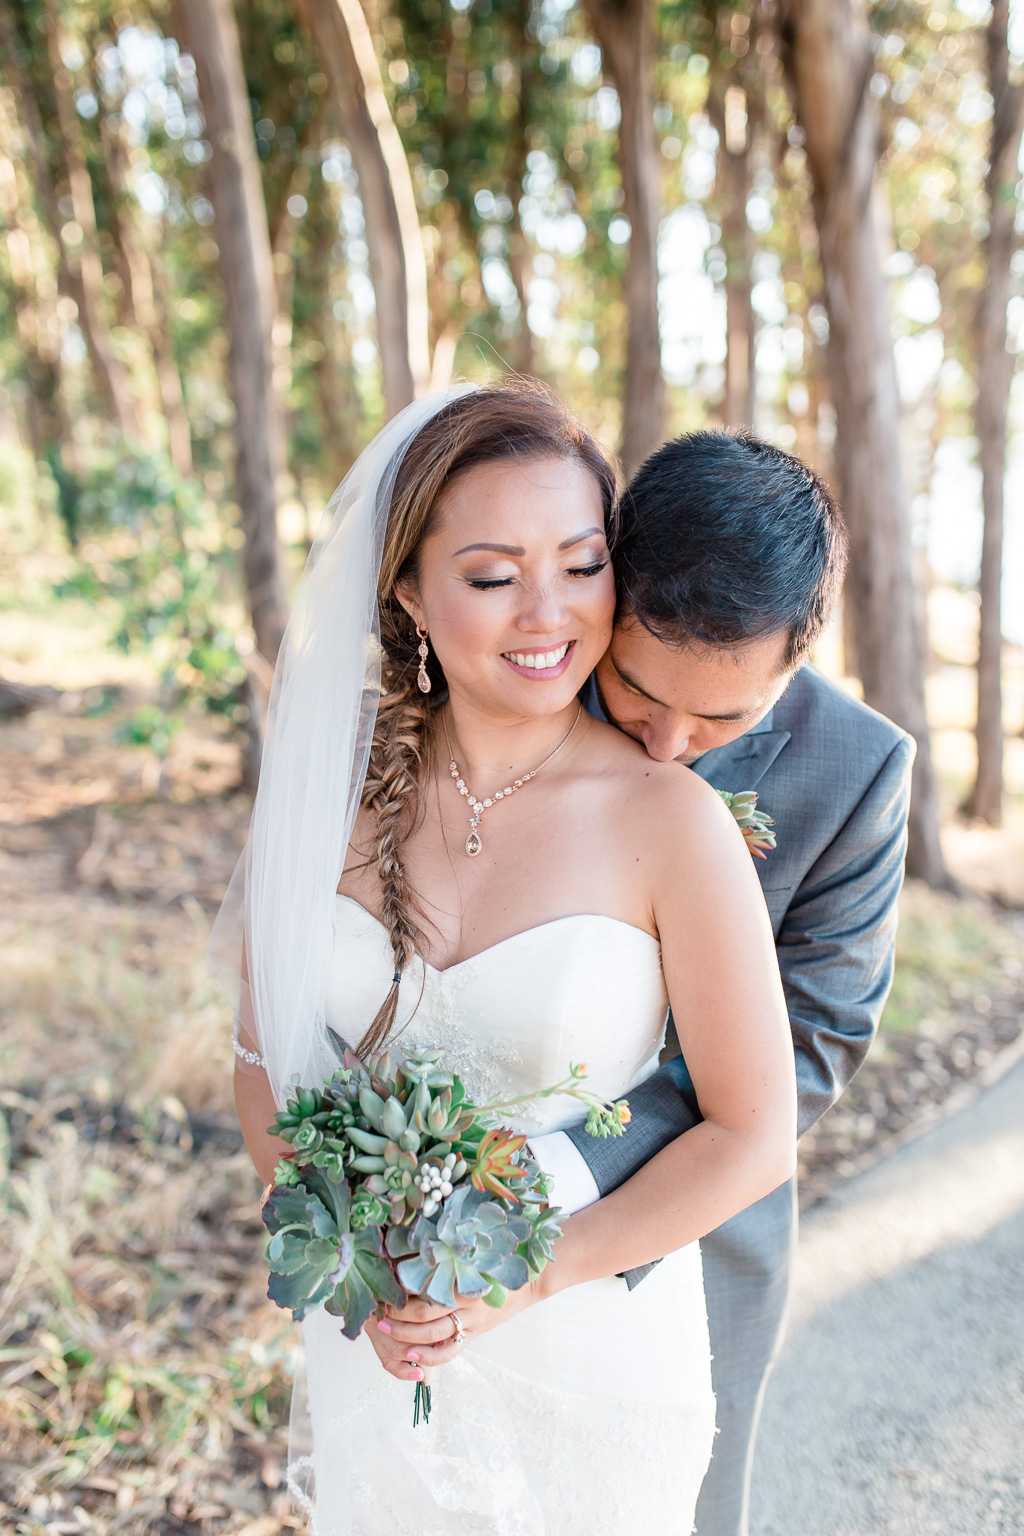 photo of groom and bride holding floral DIY bouquet in the woods